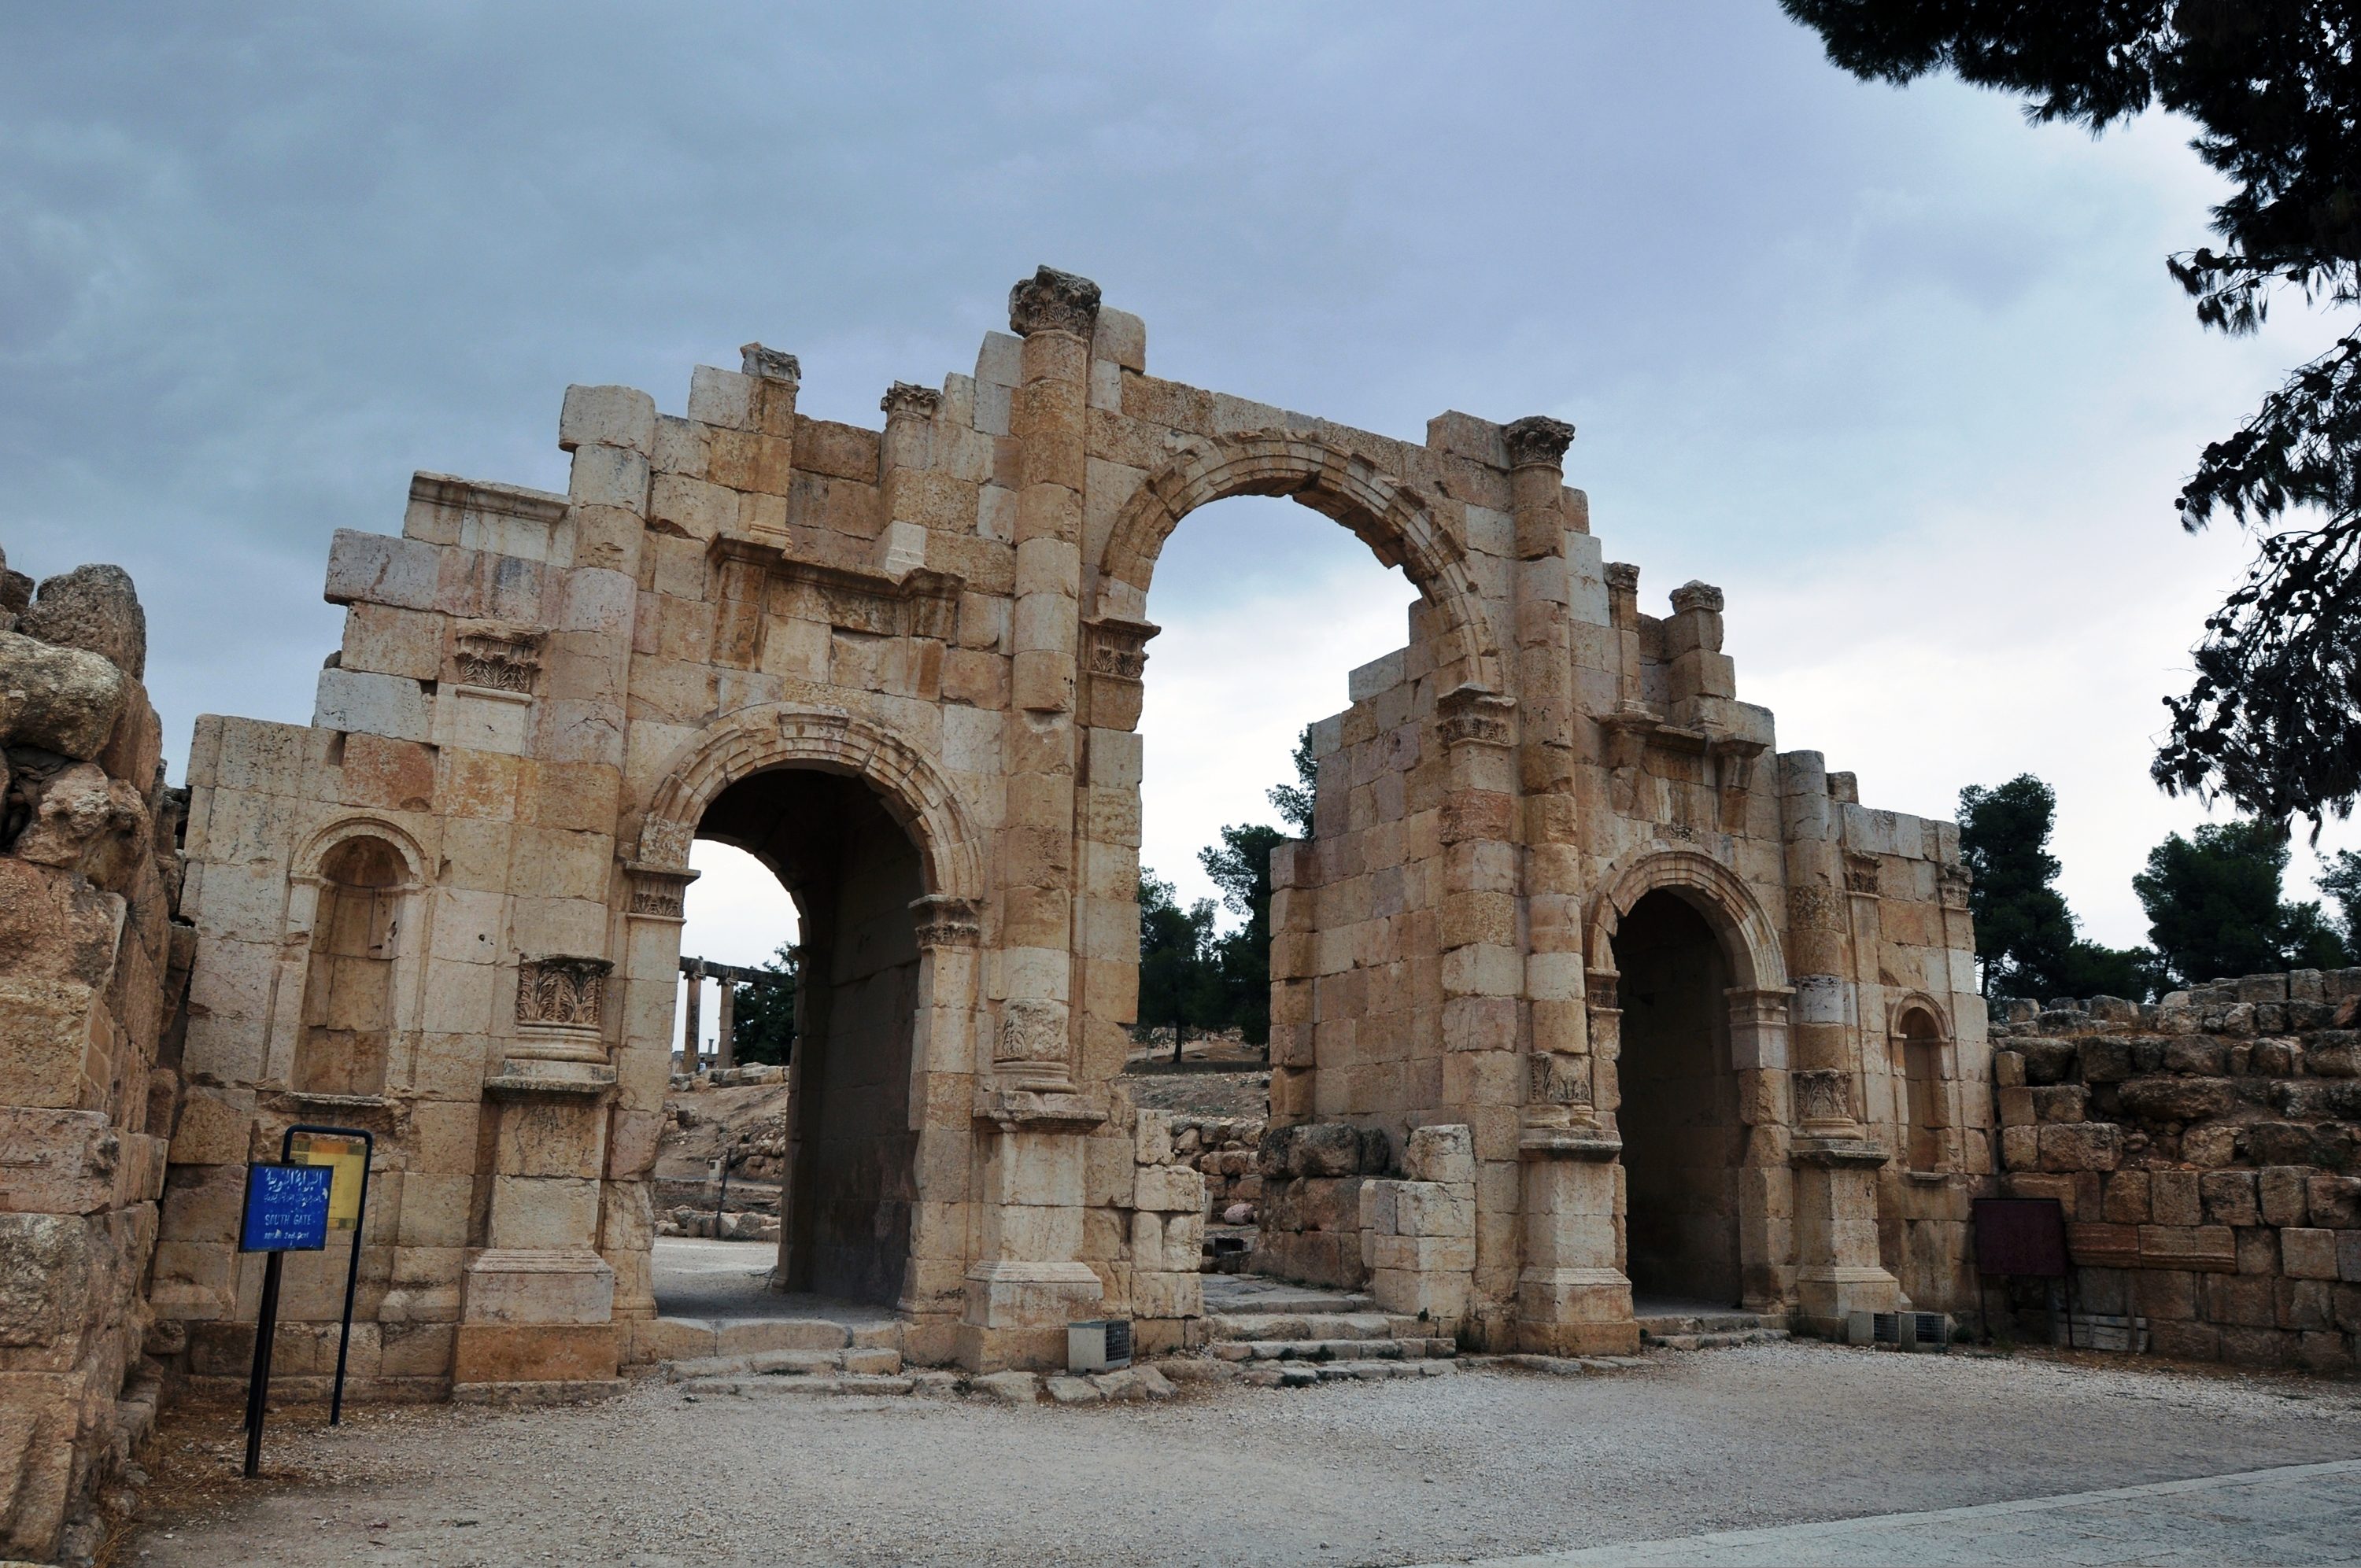 City Of South Gate >> File:South Gate in the ancient city of Jerash.JPG - Wikimedia Commons